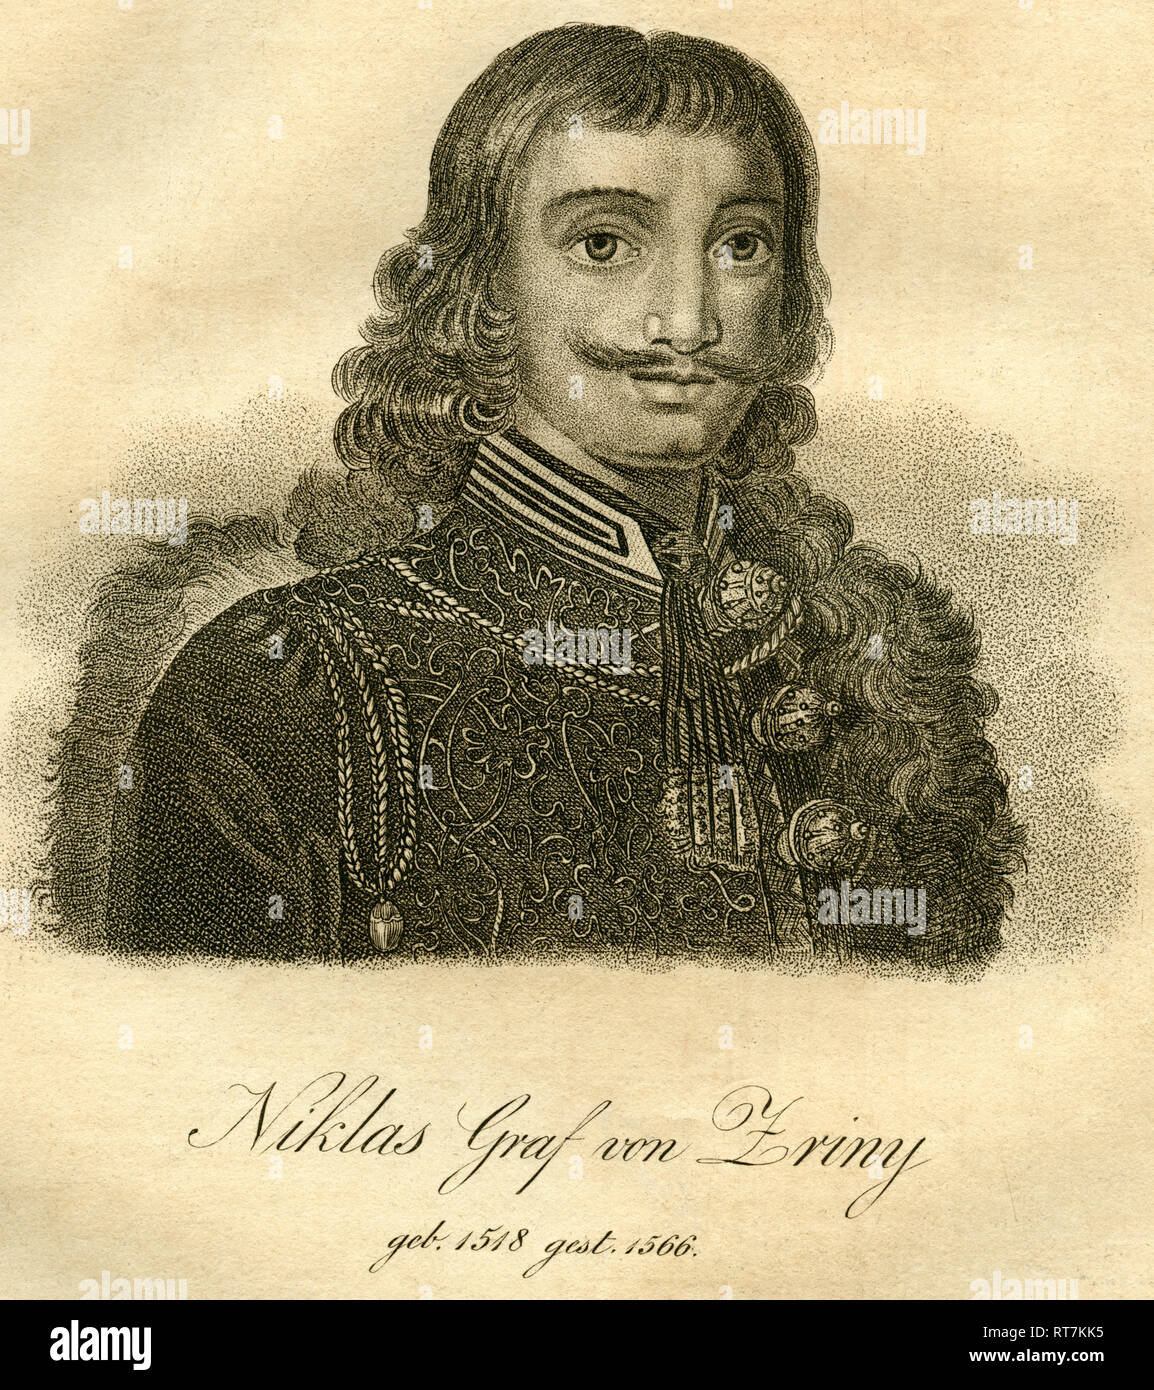 Niklas Count of Zriny, portrait, Croatian-Hungarian nobility, copperplate engraving on handmade paper, about 1750., Artist's Copyright has not to be cleared - Stock Image